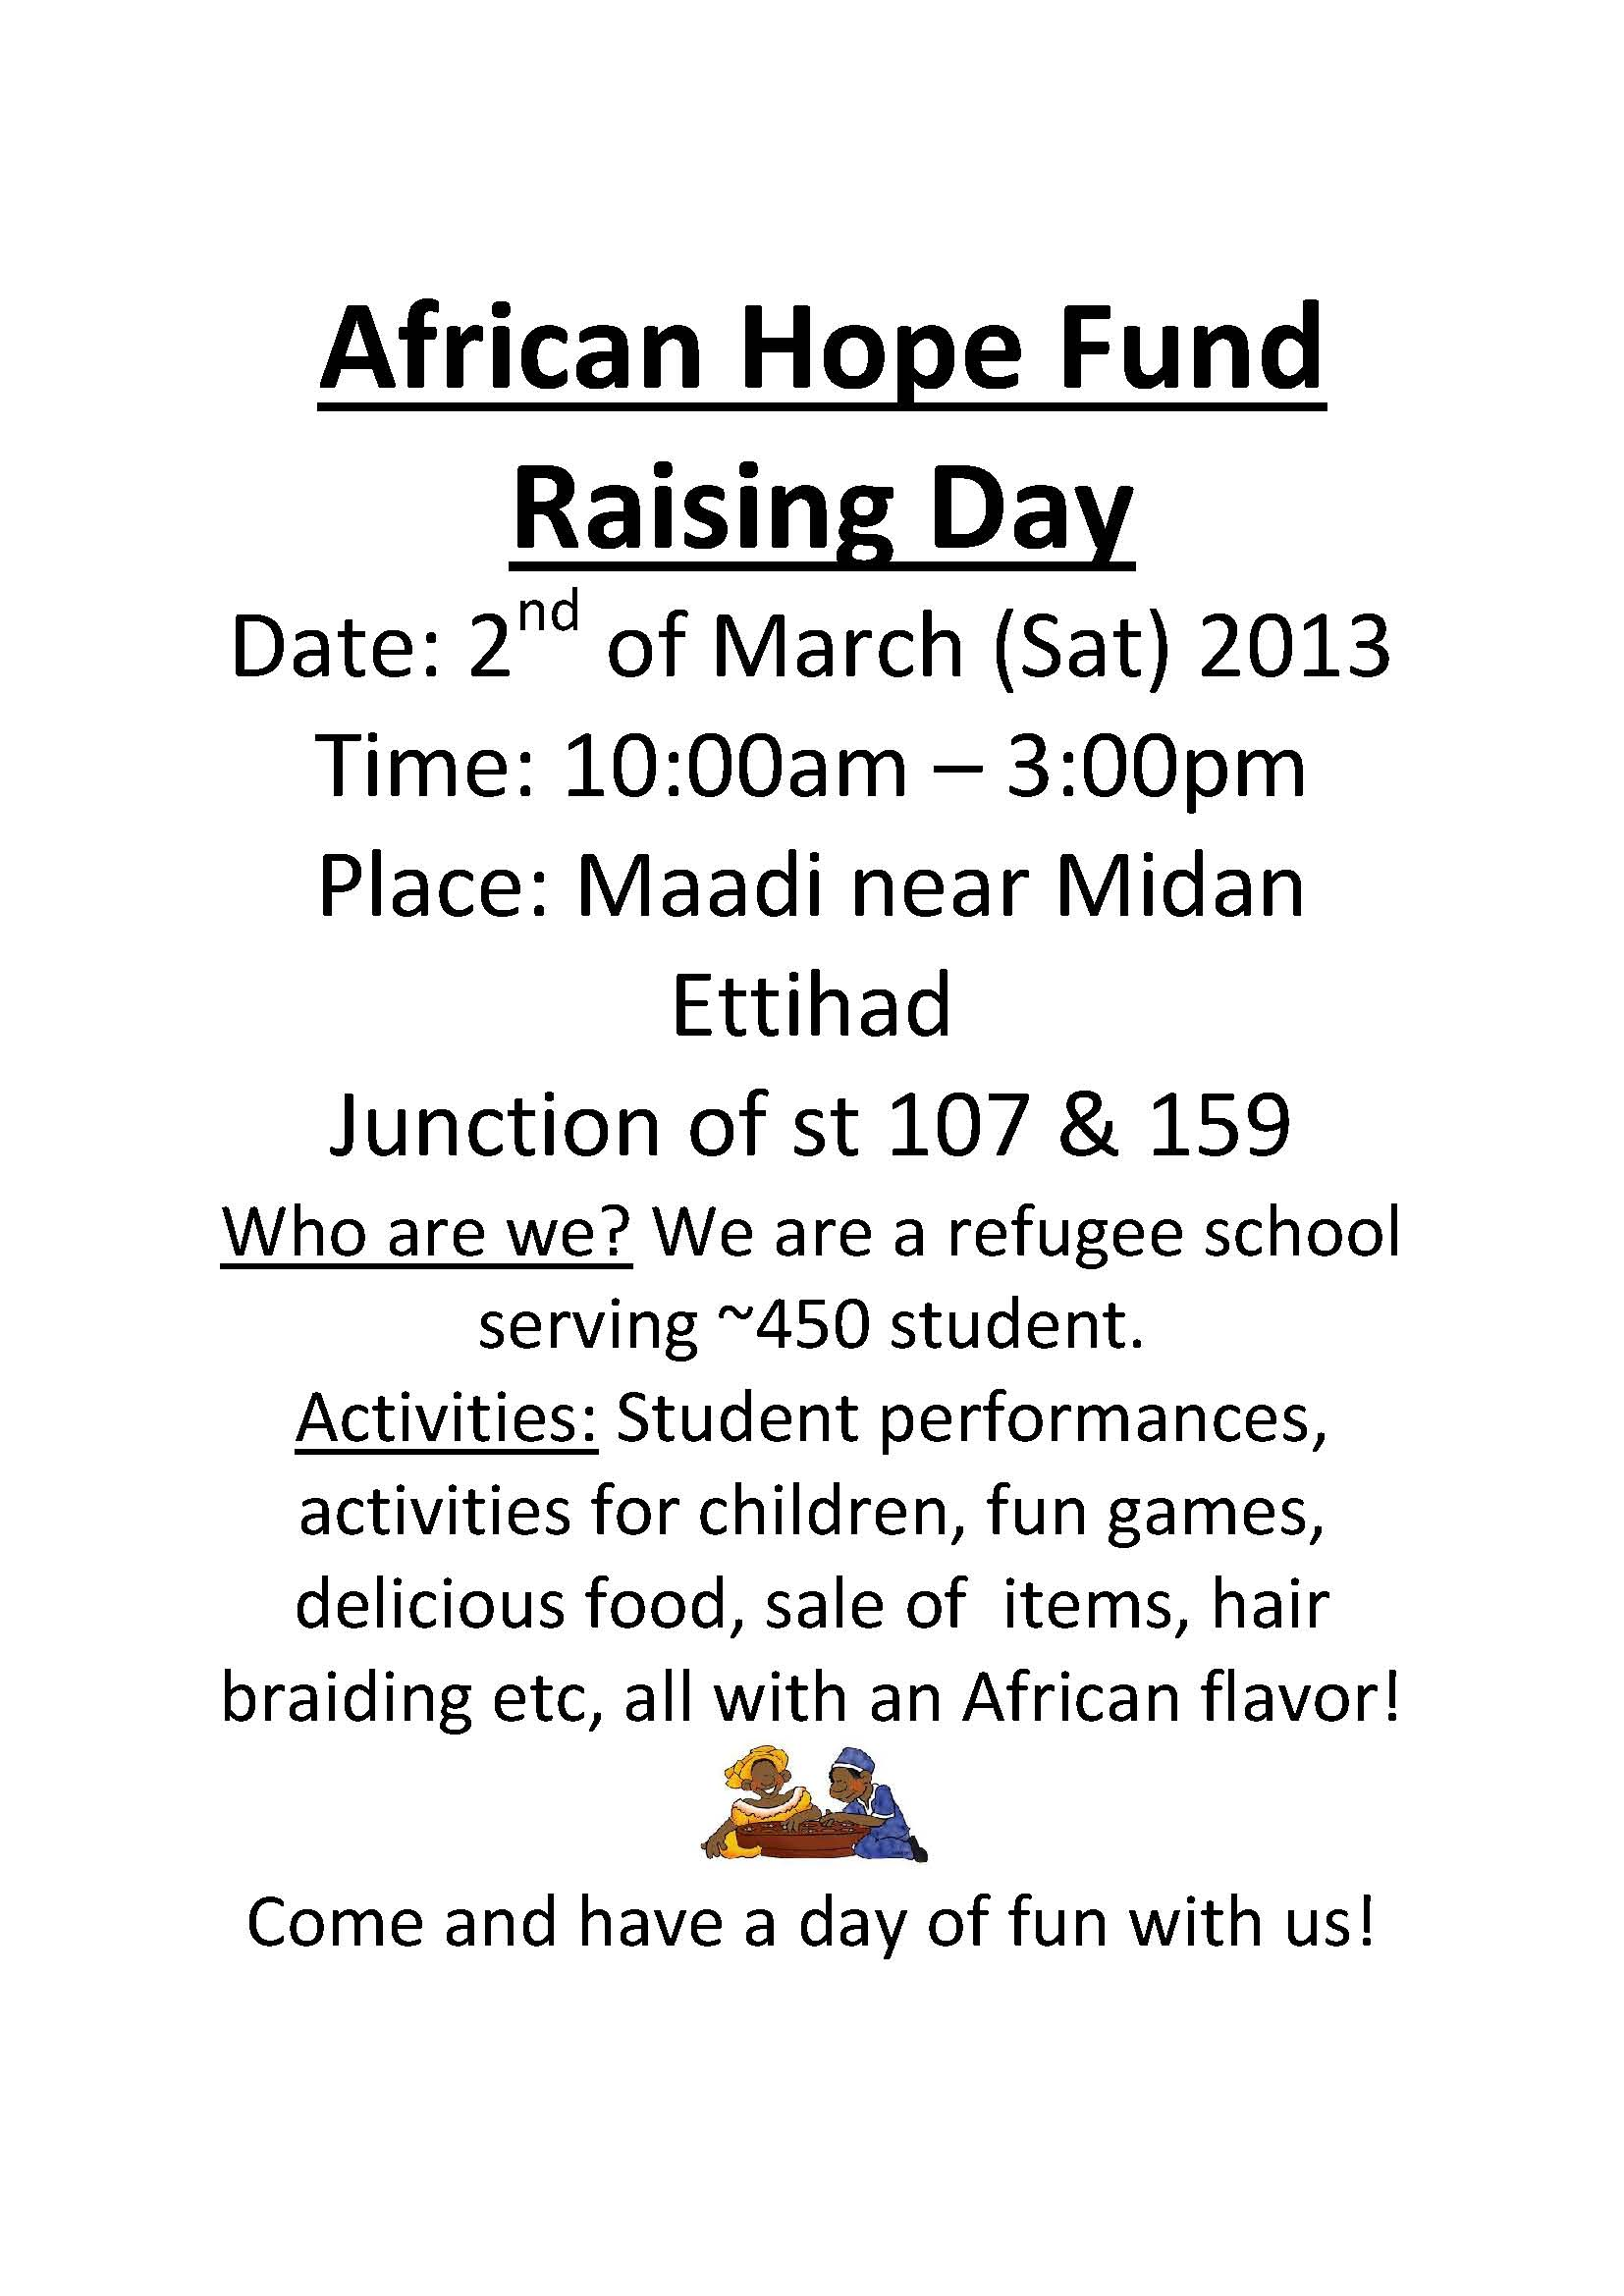 African Hope Fund Raising Day_2nd March A4 Advert